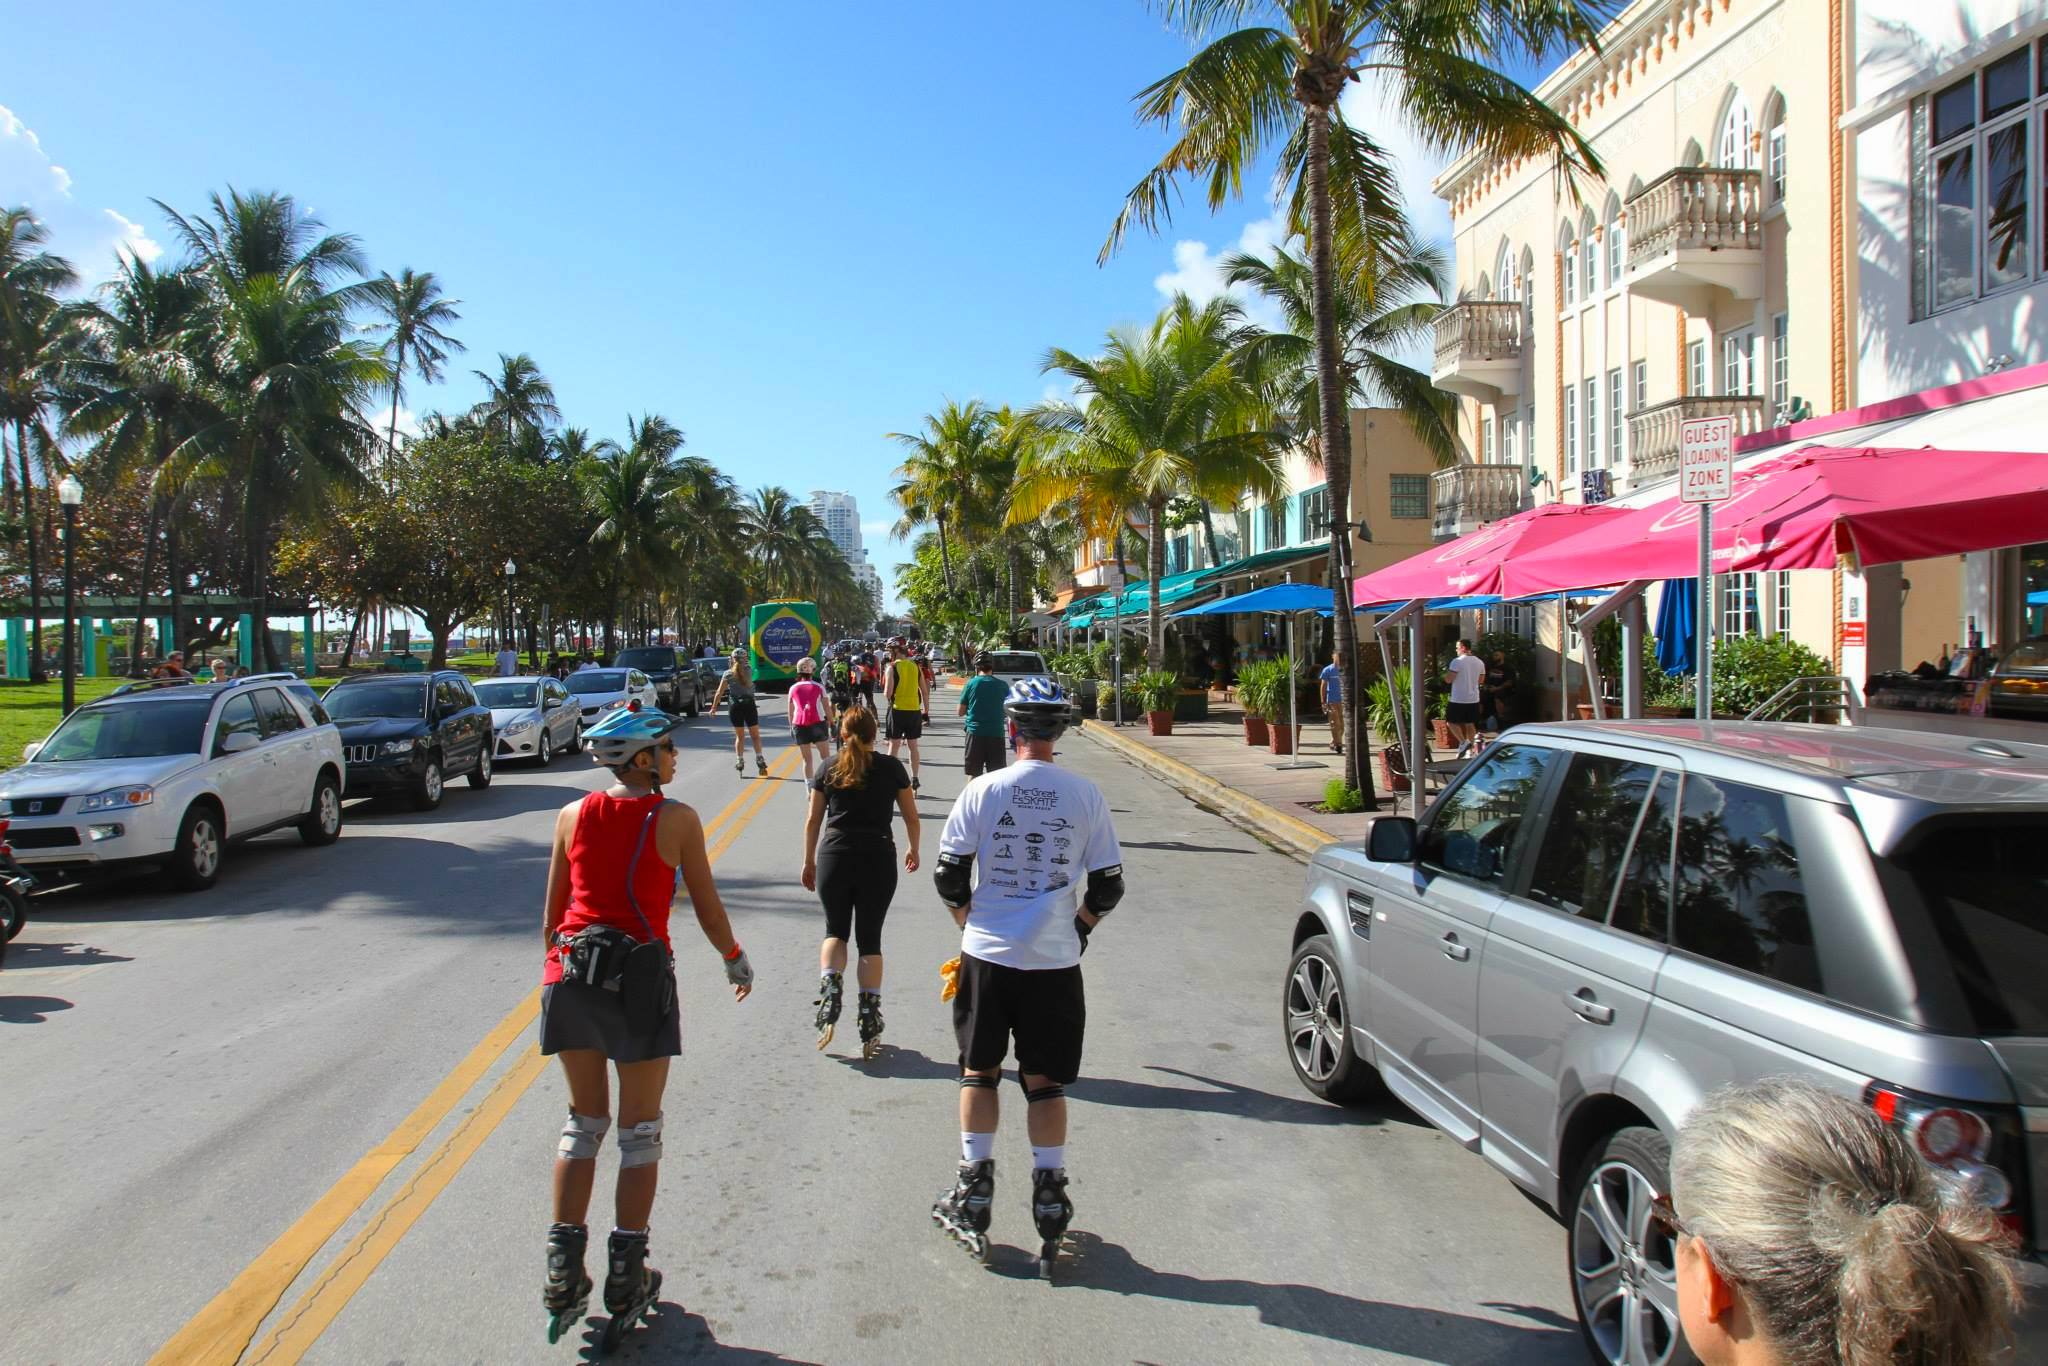 Marathon starts with skating along a famous Ocean Drive in Miami Beach.